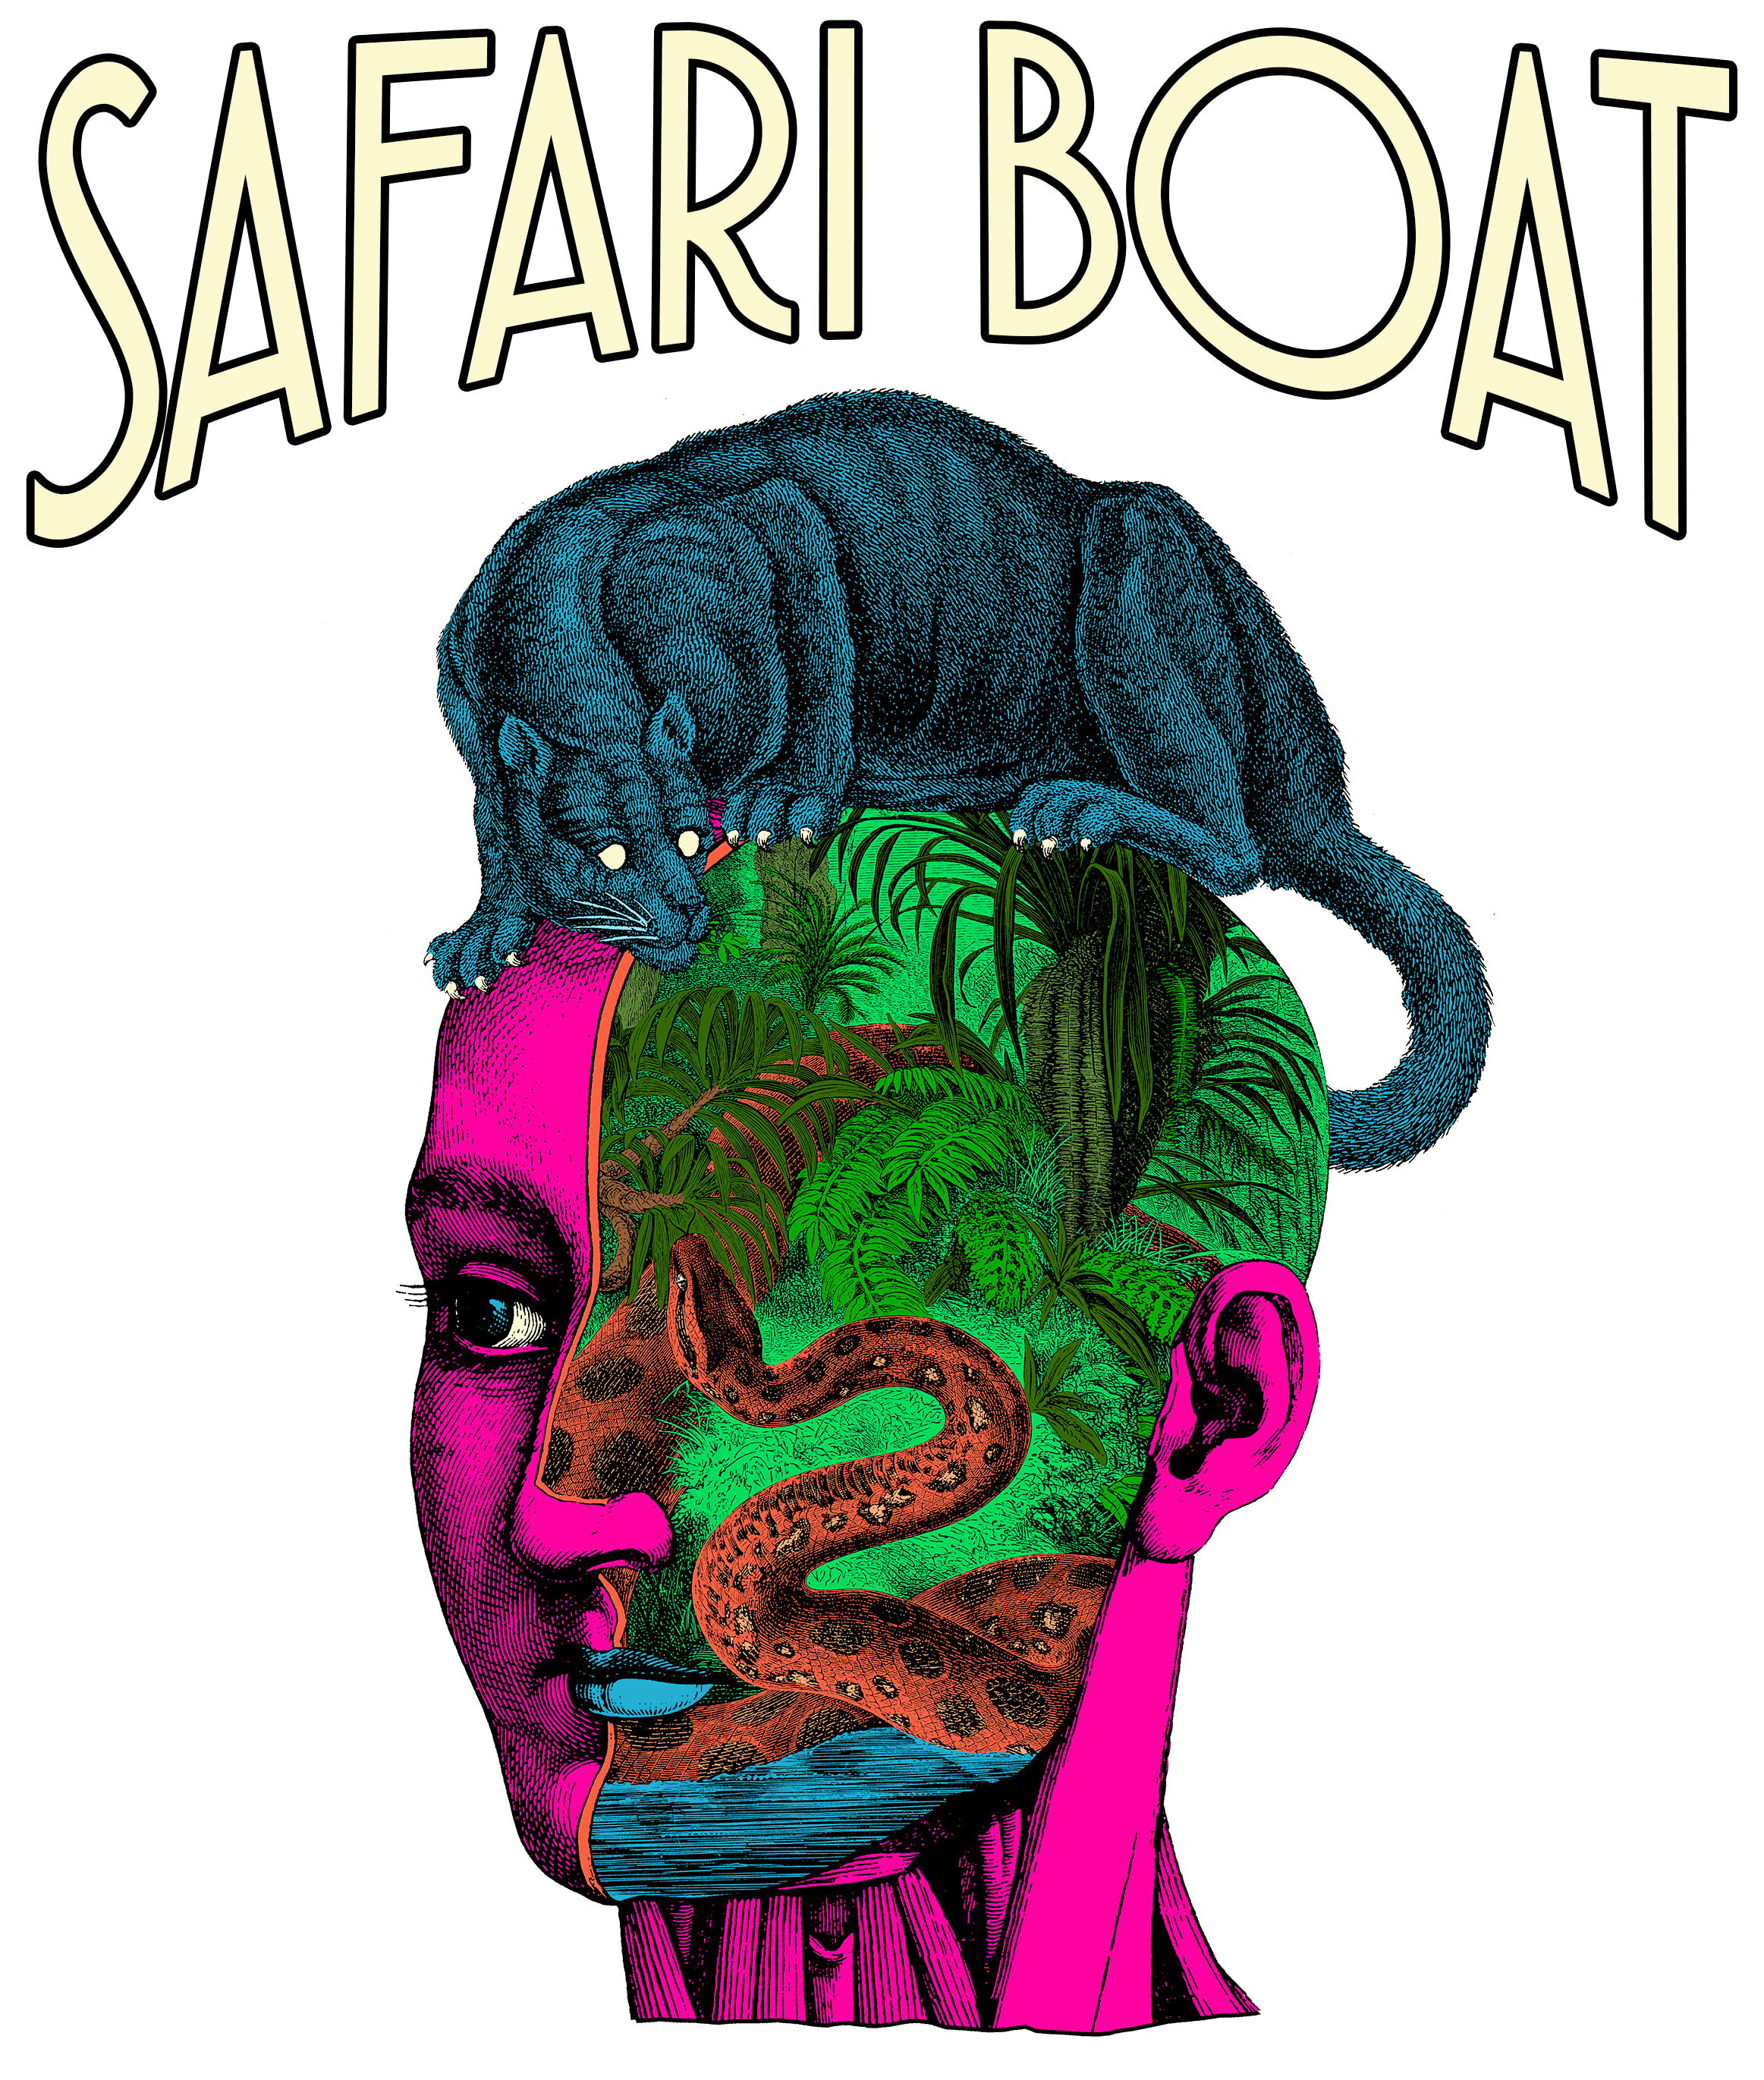 Safari Boat